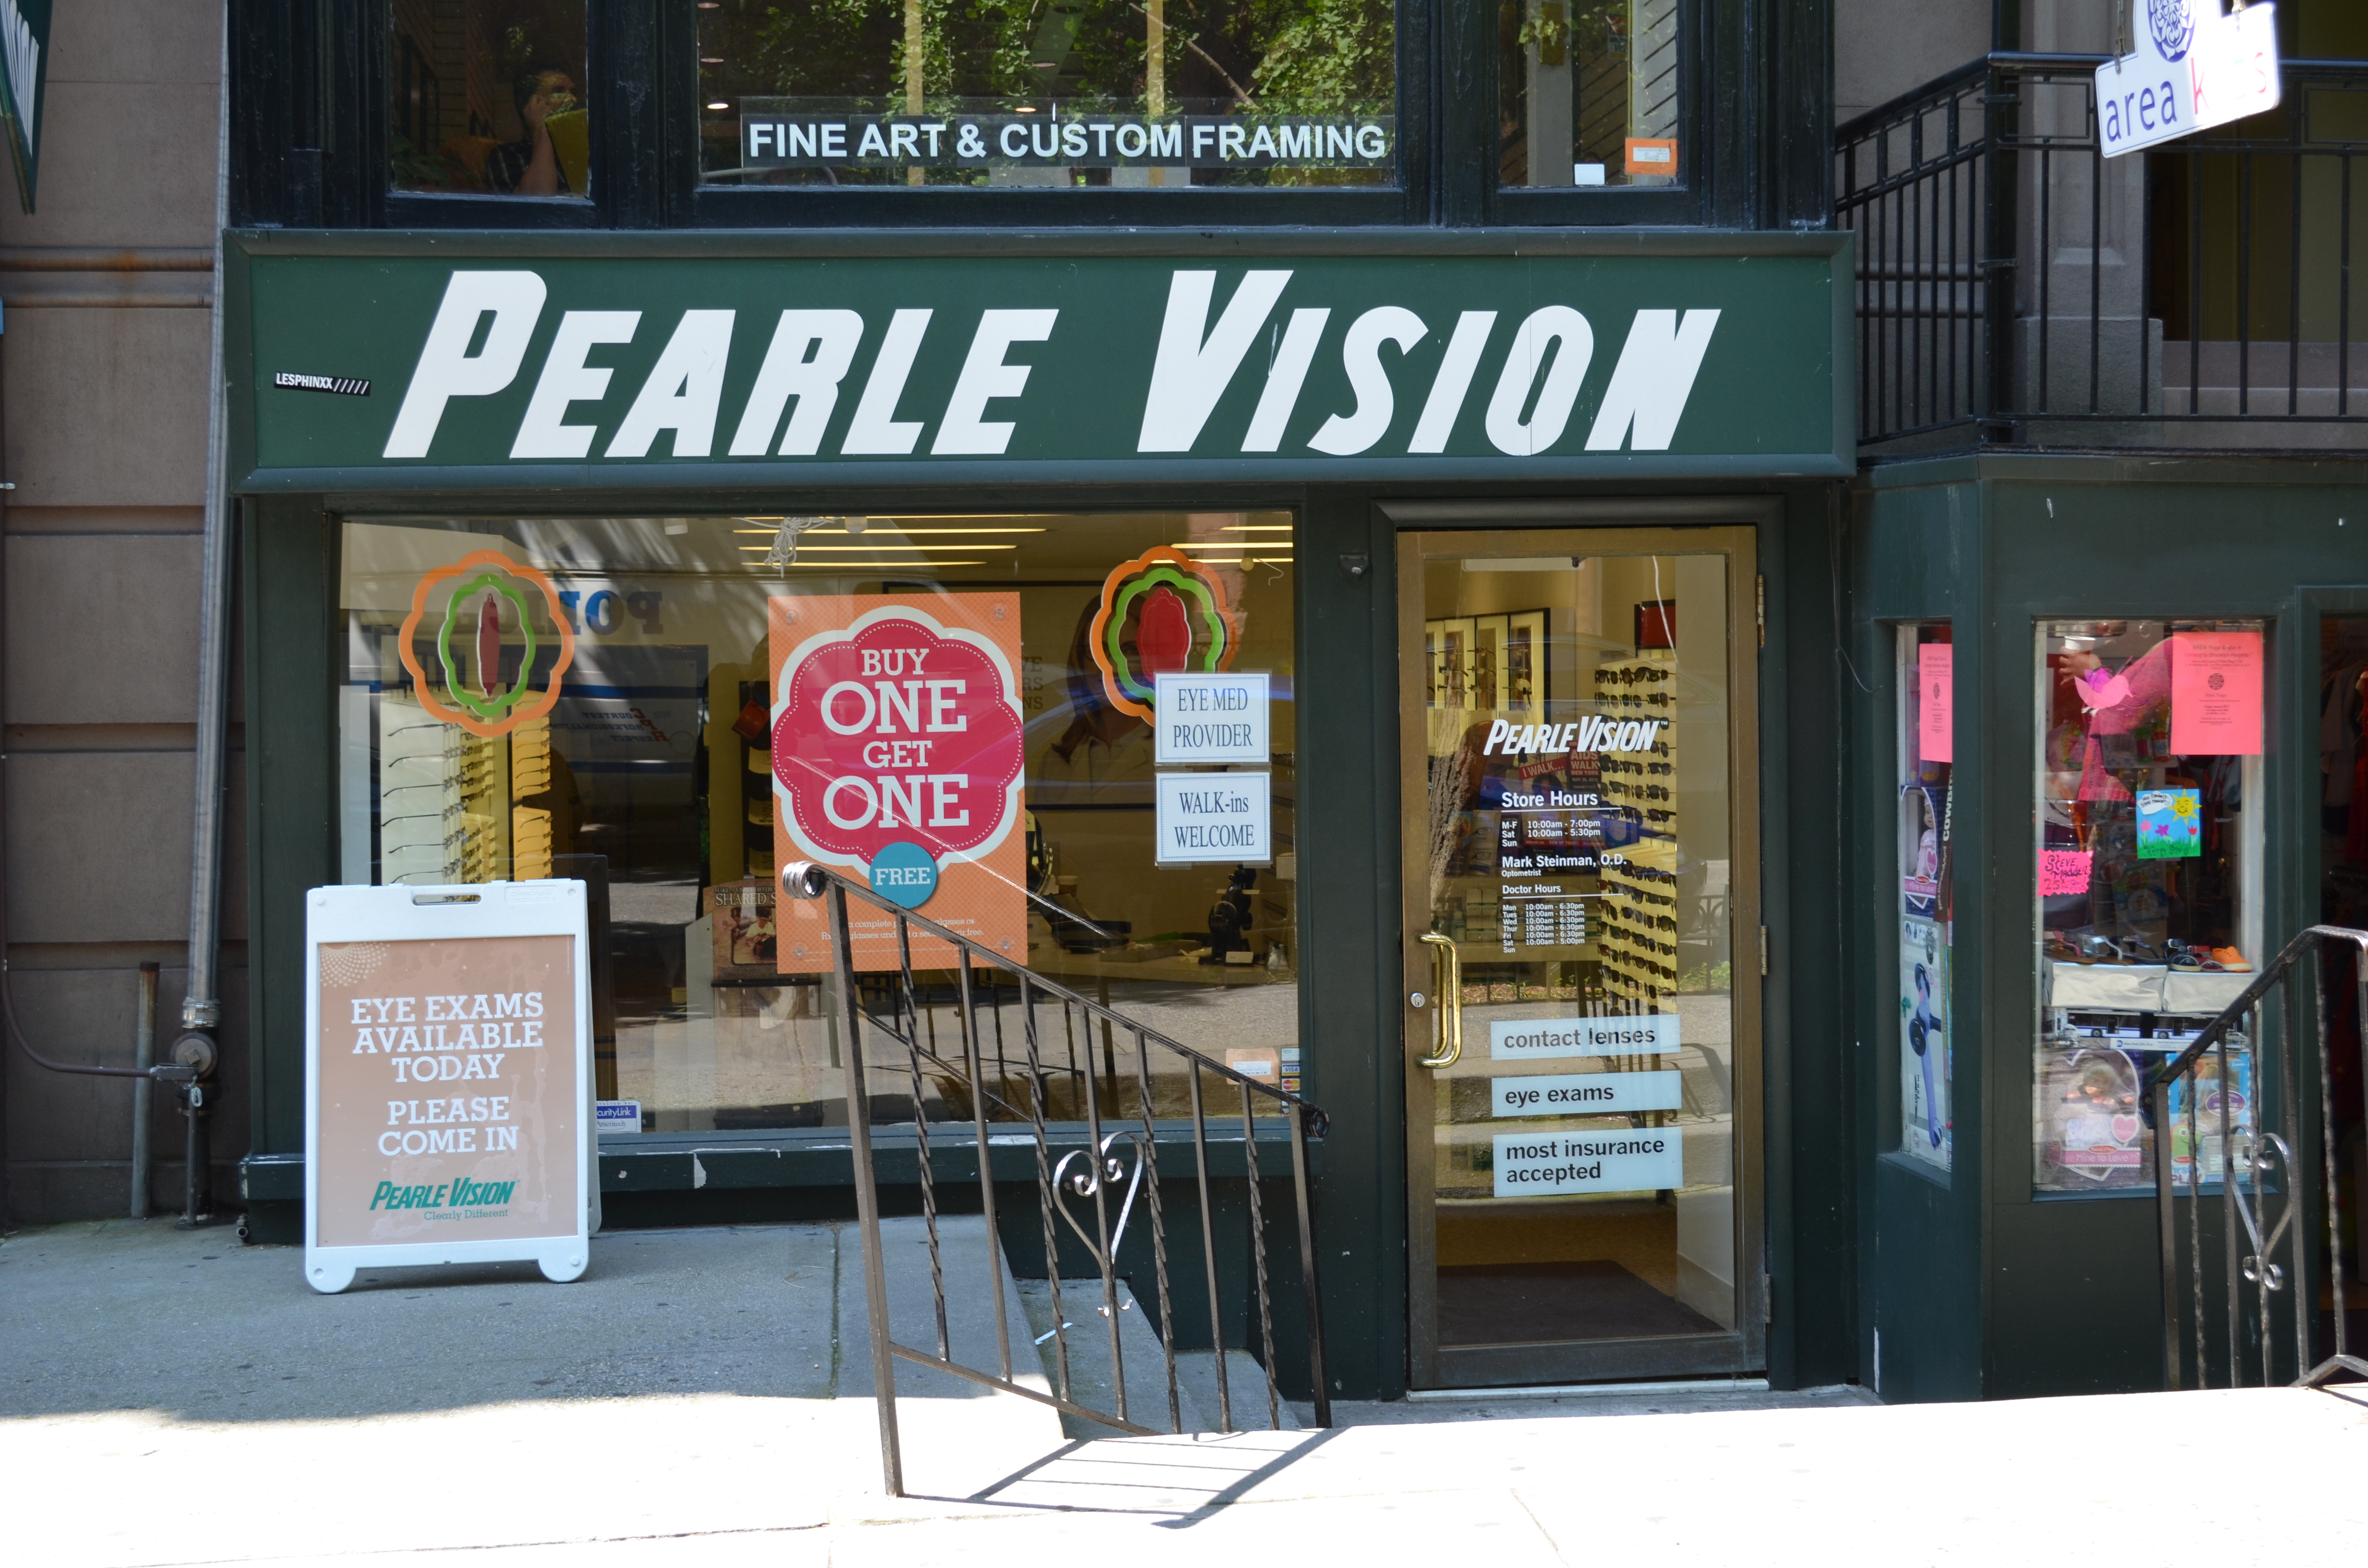 f5caf8e46ed Welcome to Pearle Vision in Brooklyn Heights! Pearle Vision has been  serving the Brooklyn Hts community for over 10 years.Our eyeglass store and  vision ...